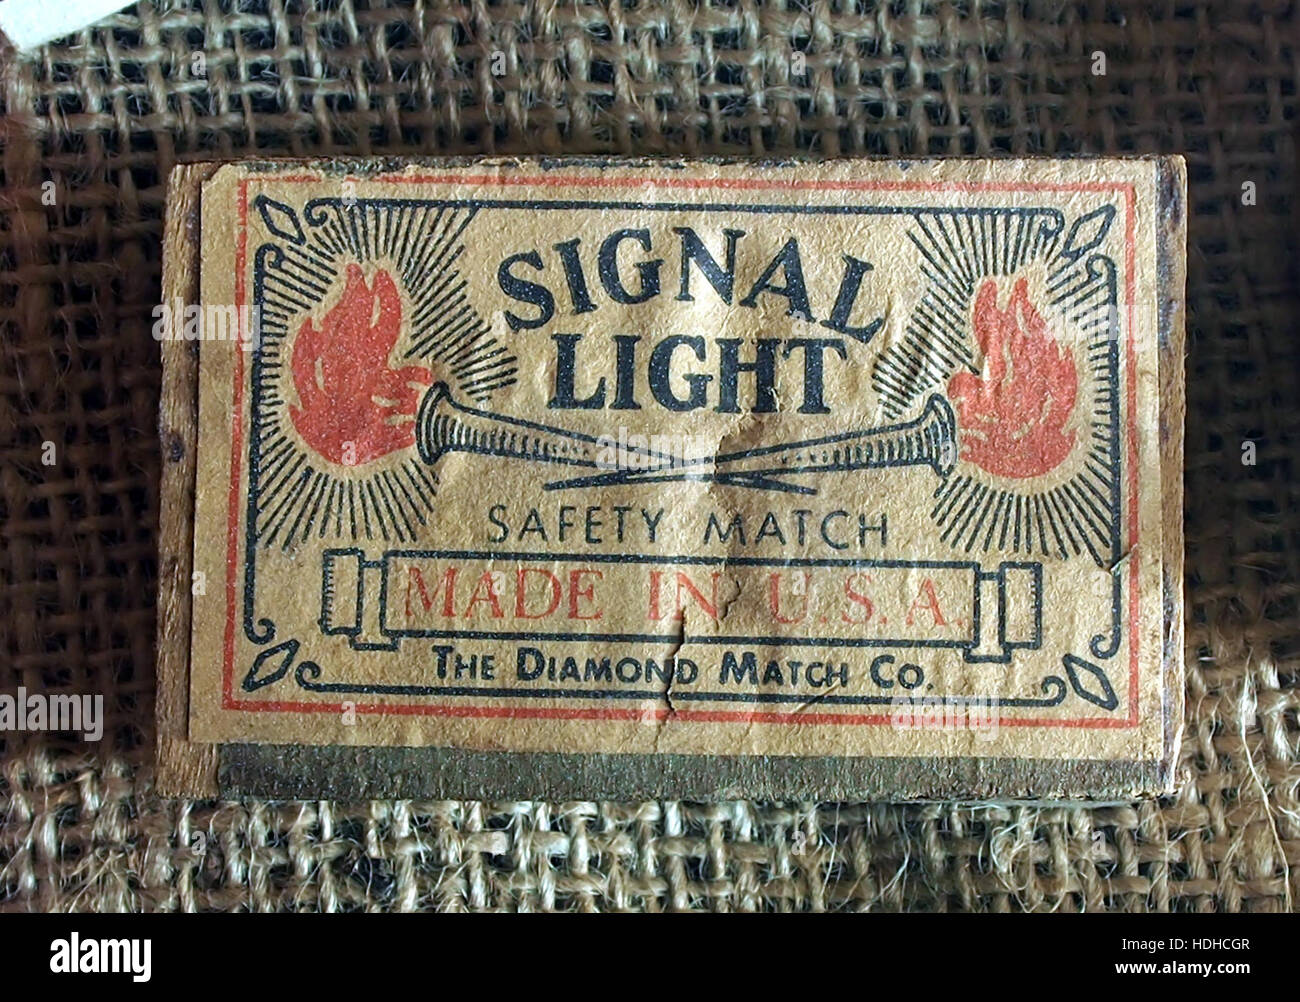 Signal Light matchbox of WW2, Museum Winter 1944 in Gingelom - Stock Image